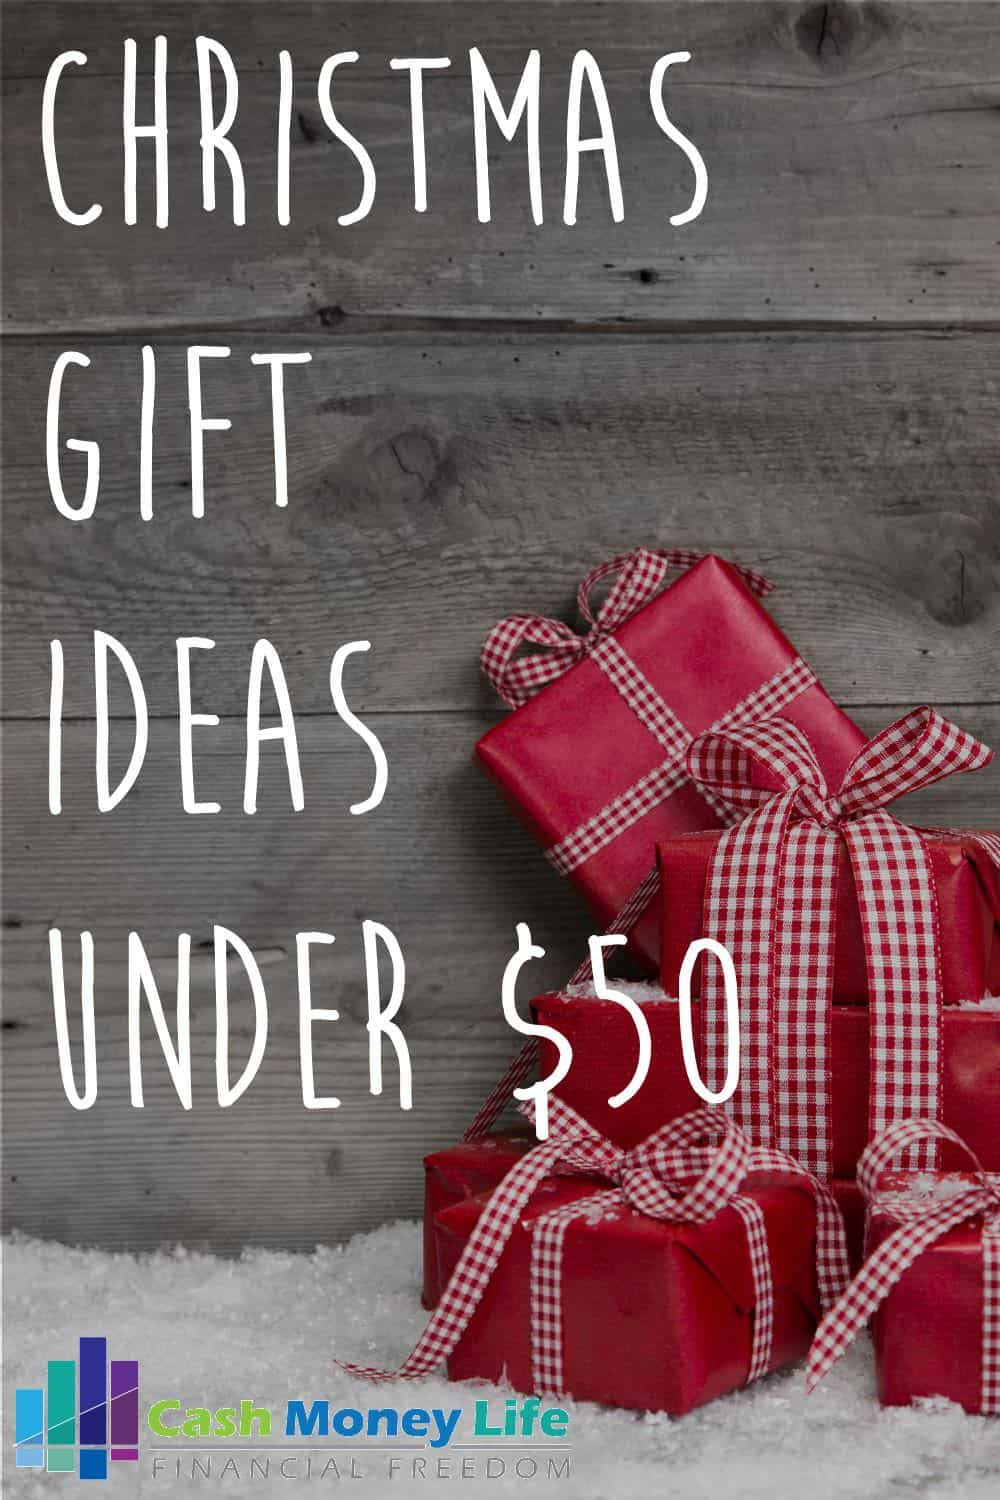 Christmas Gift Ideas Under $50